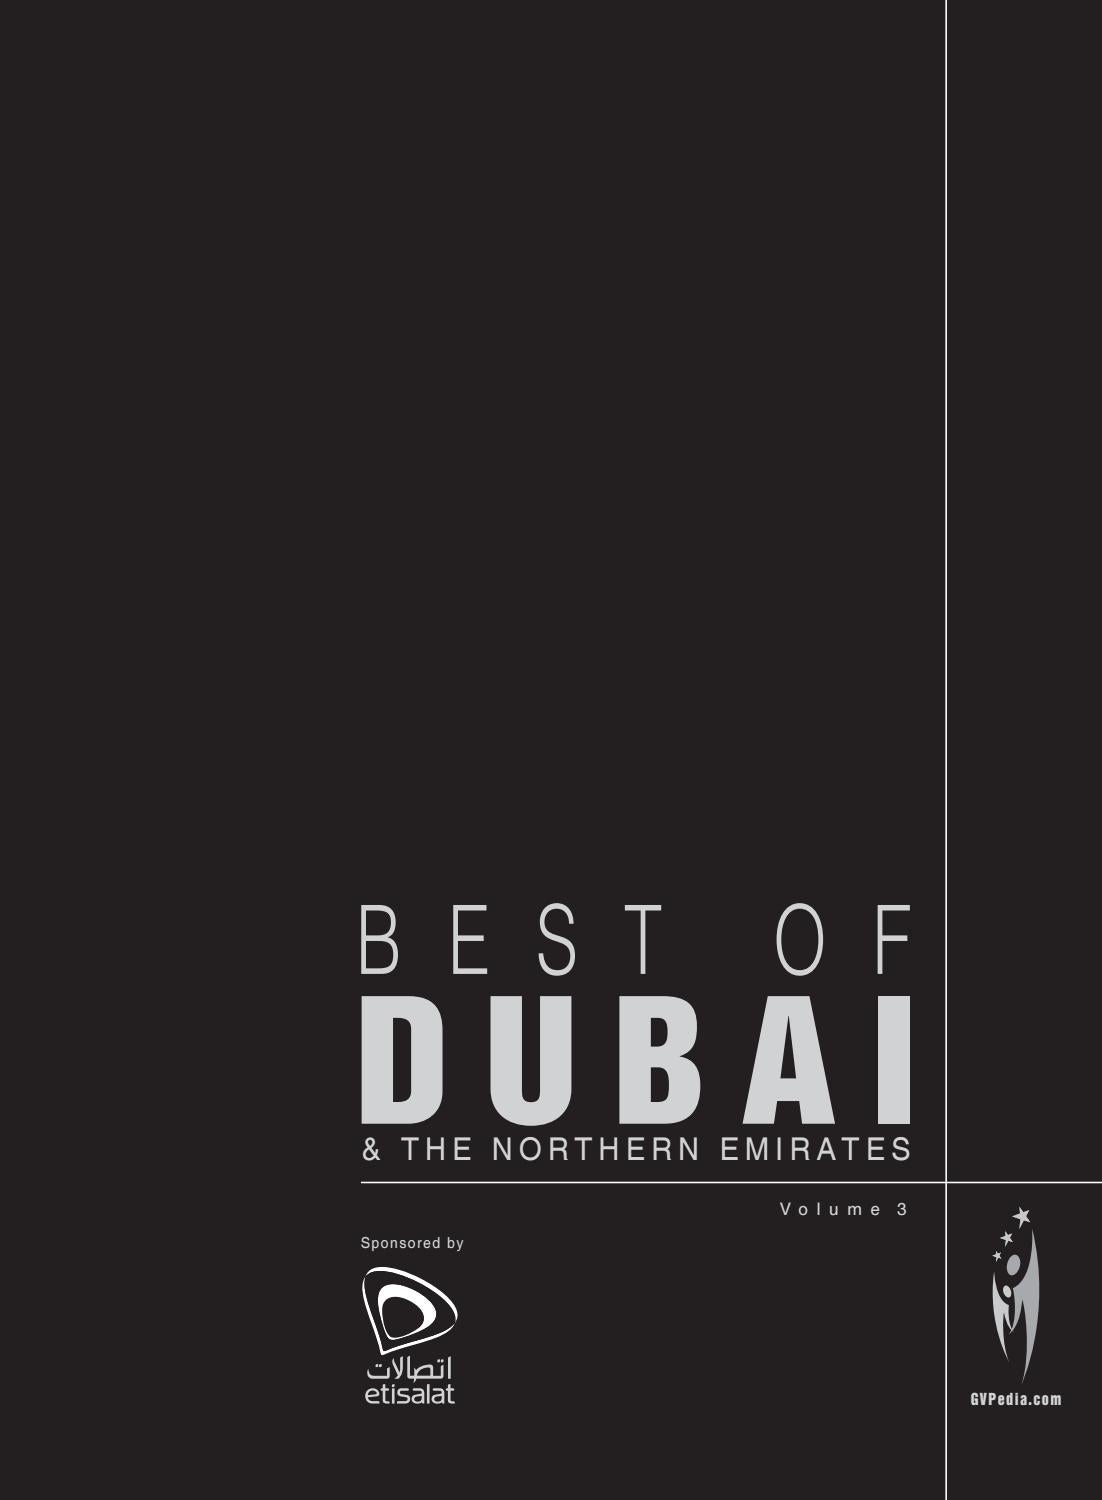 BEST OF DUBAI - Volume 3 by Sven Boermeester - issuu